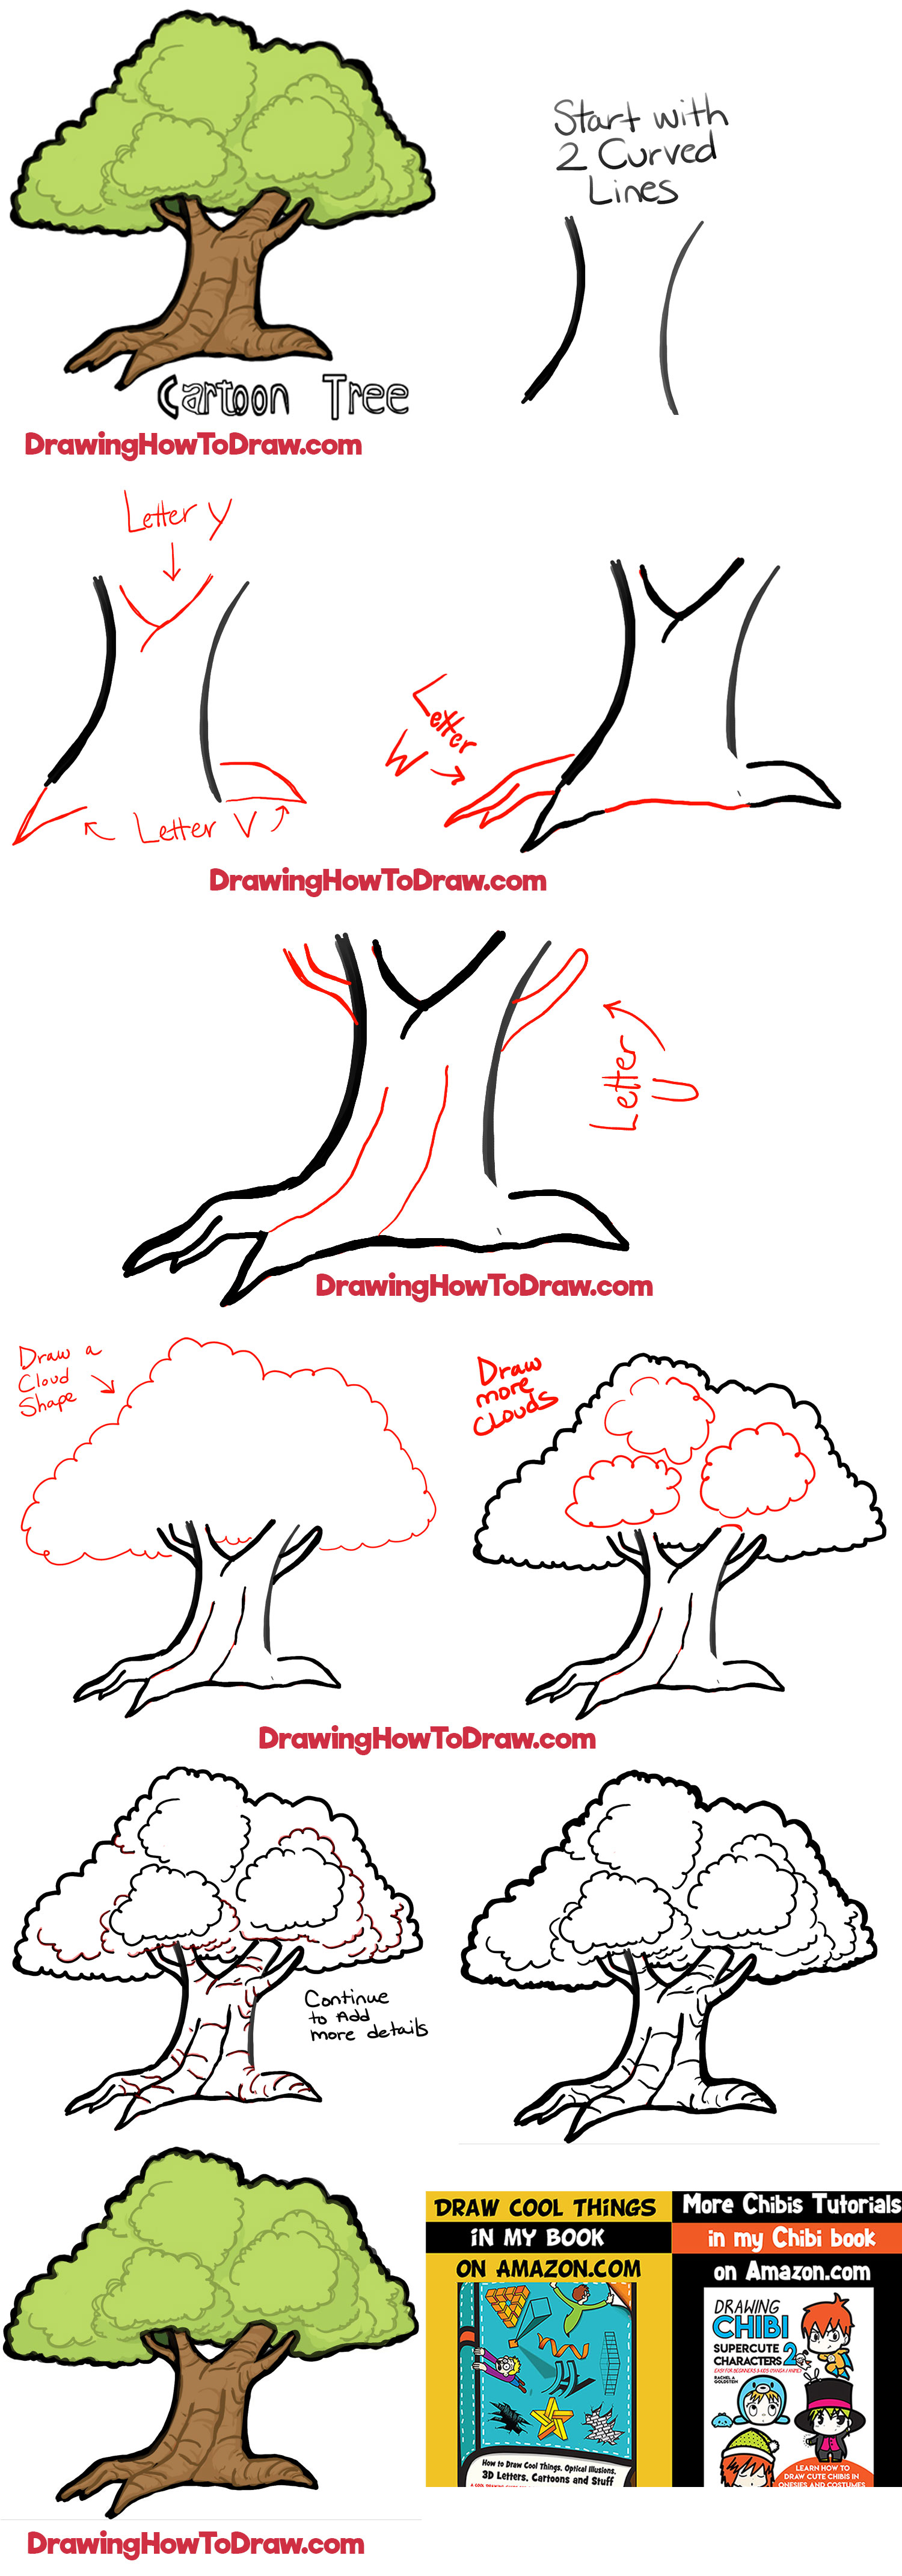 Step By Step Diagram Template: How To Draw Cartoon Trees With Easy Step By Step Drawing